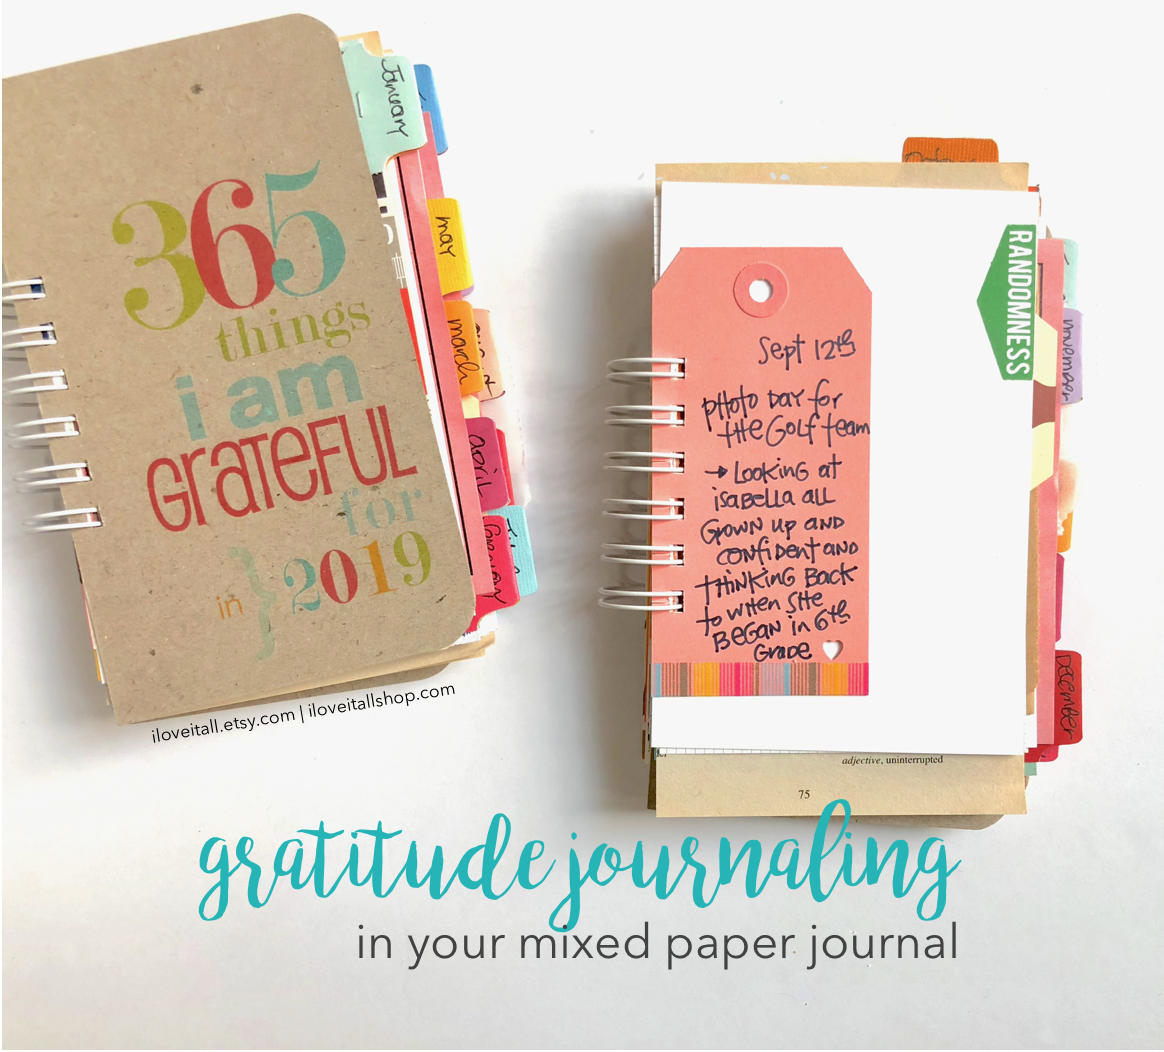 #gratitude #gratitude journal #grateful #journaling #thankful #thanfulness #Mindfulness #365 Things I Am Grateful For